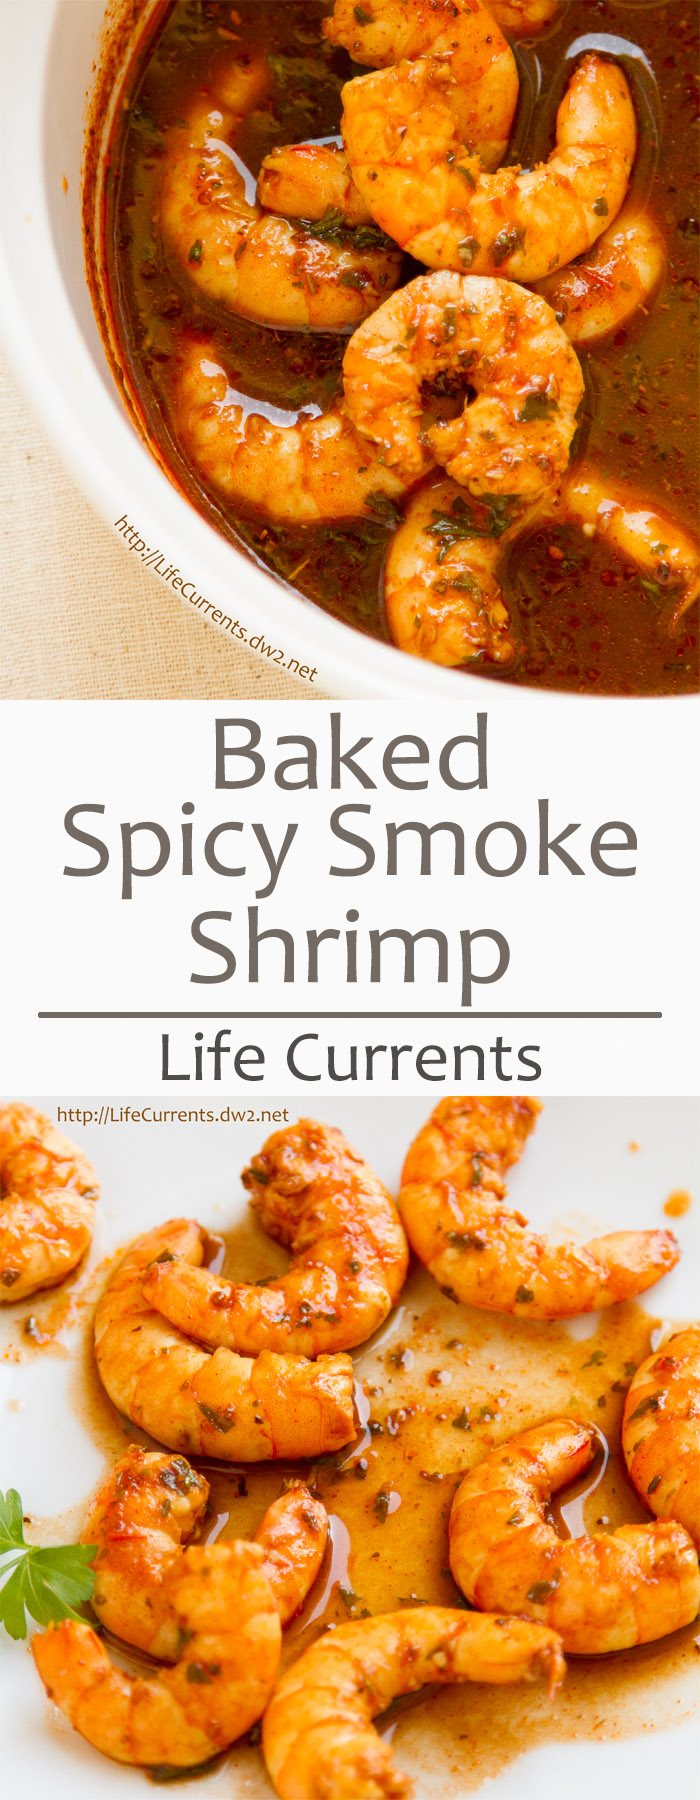 Baked Shrimp in Spicy Smoke Sauce. Besides being easy to make (just dunk the thawed shrimp in Spicy Smoke Sauce and bake), they are super flavorful. Smoke flavors from the liquid smoke and the earthy smoked paprika. A little kick of heat from the Sriracha and cayenne.